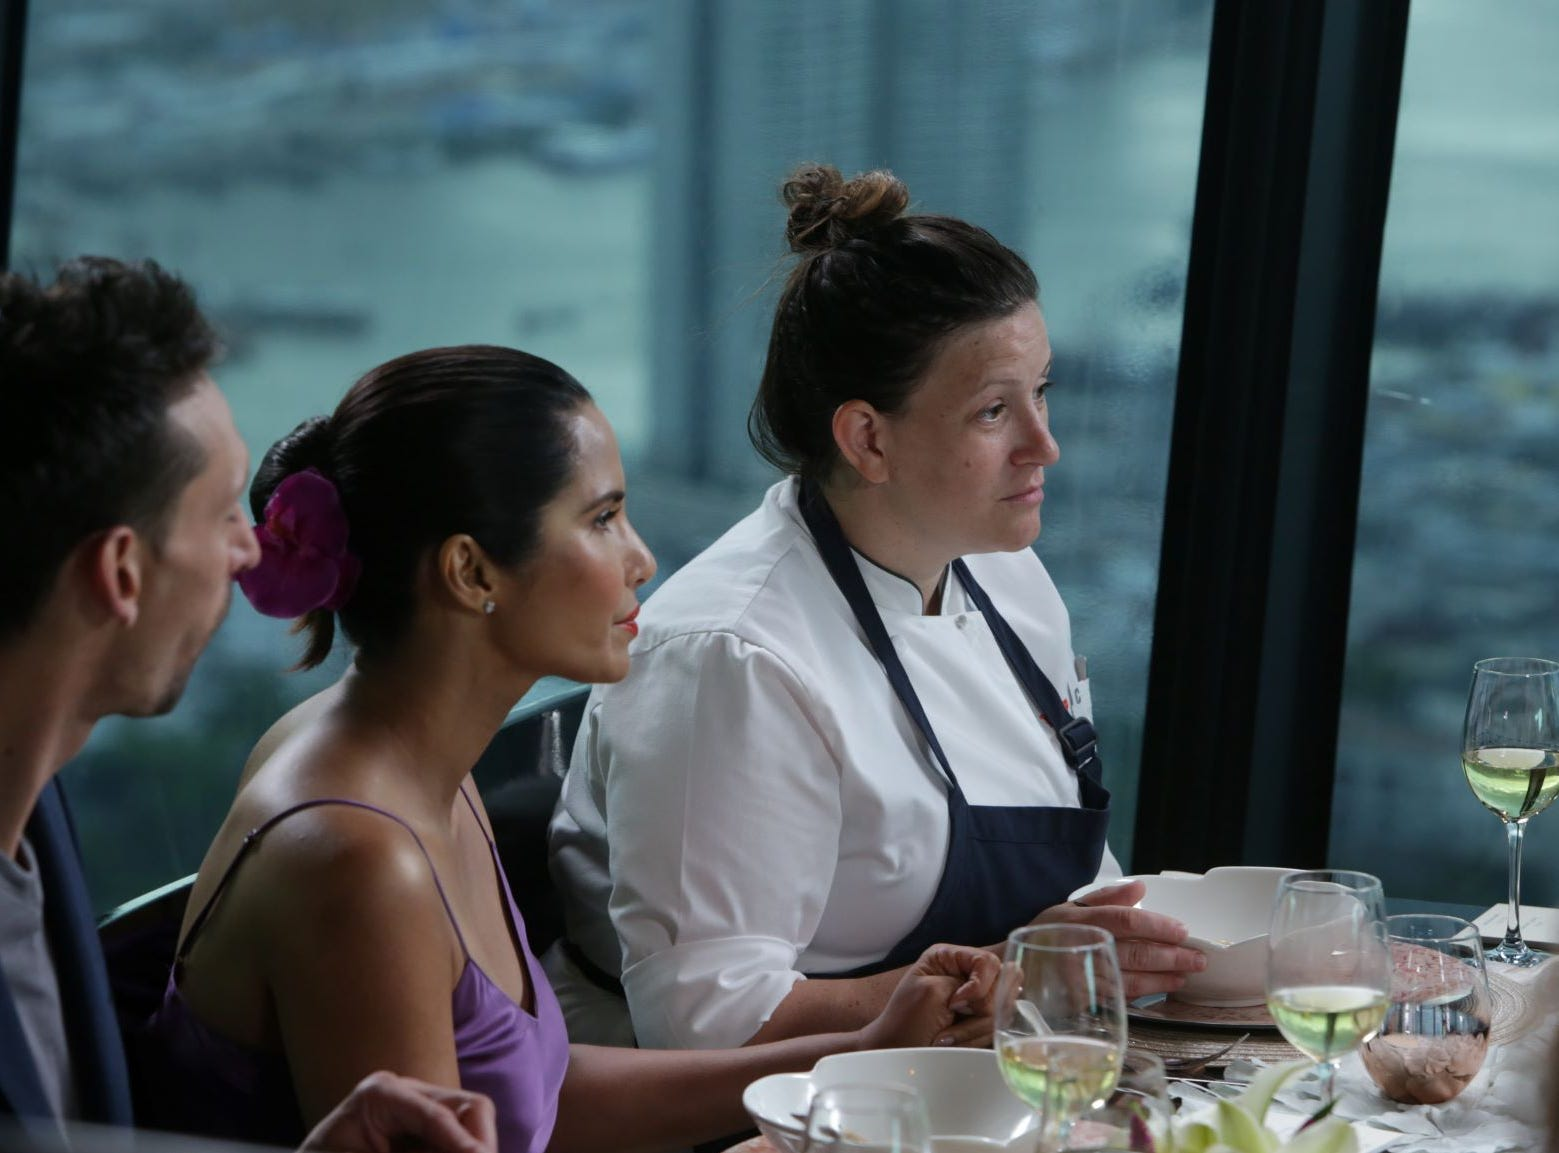 "(From left to right): Host Padma Lakshmi and contestant Sara Bradley on ""The Tao of Macau,"" episode 14 of Bravo's 'Top Chef:' Kentucky season."